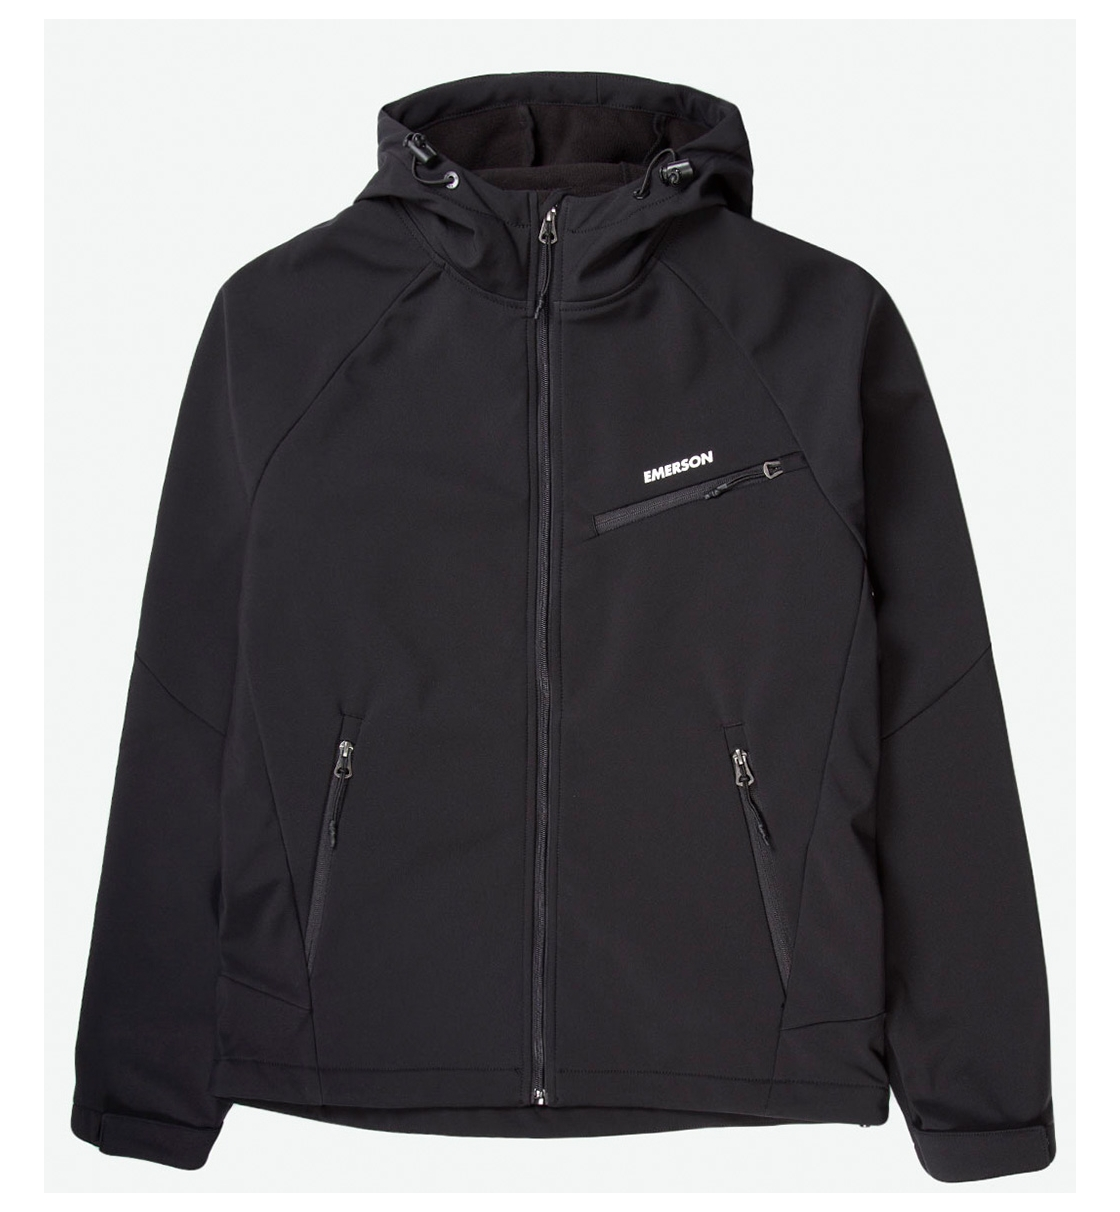 Emerson Fw20 Men'S Soft Shell Jacket With Hood